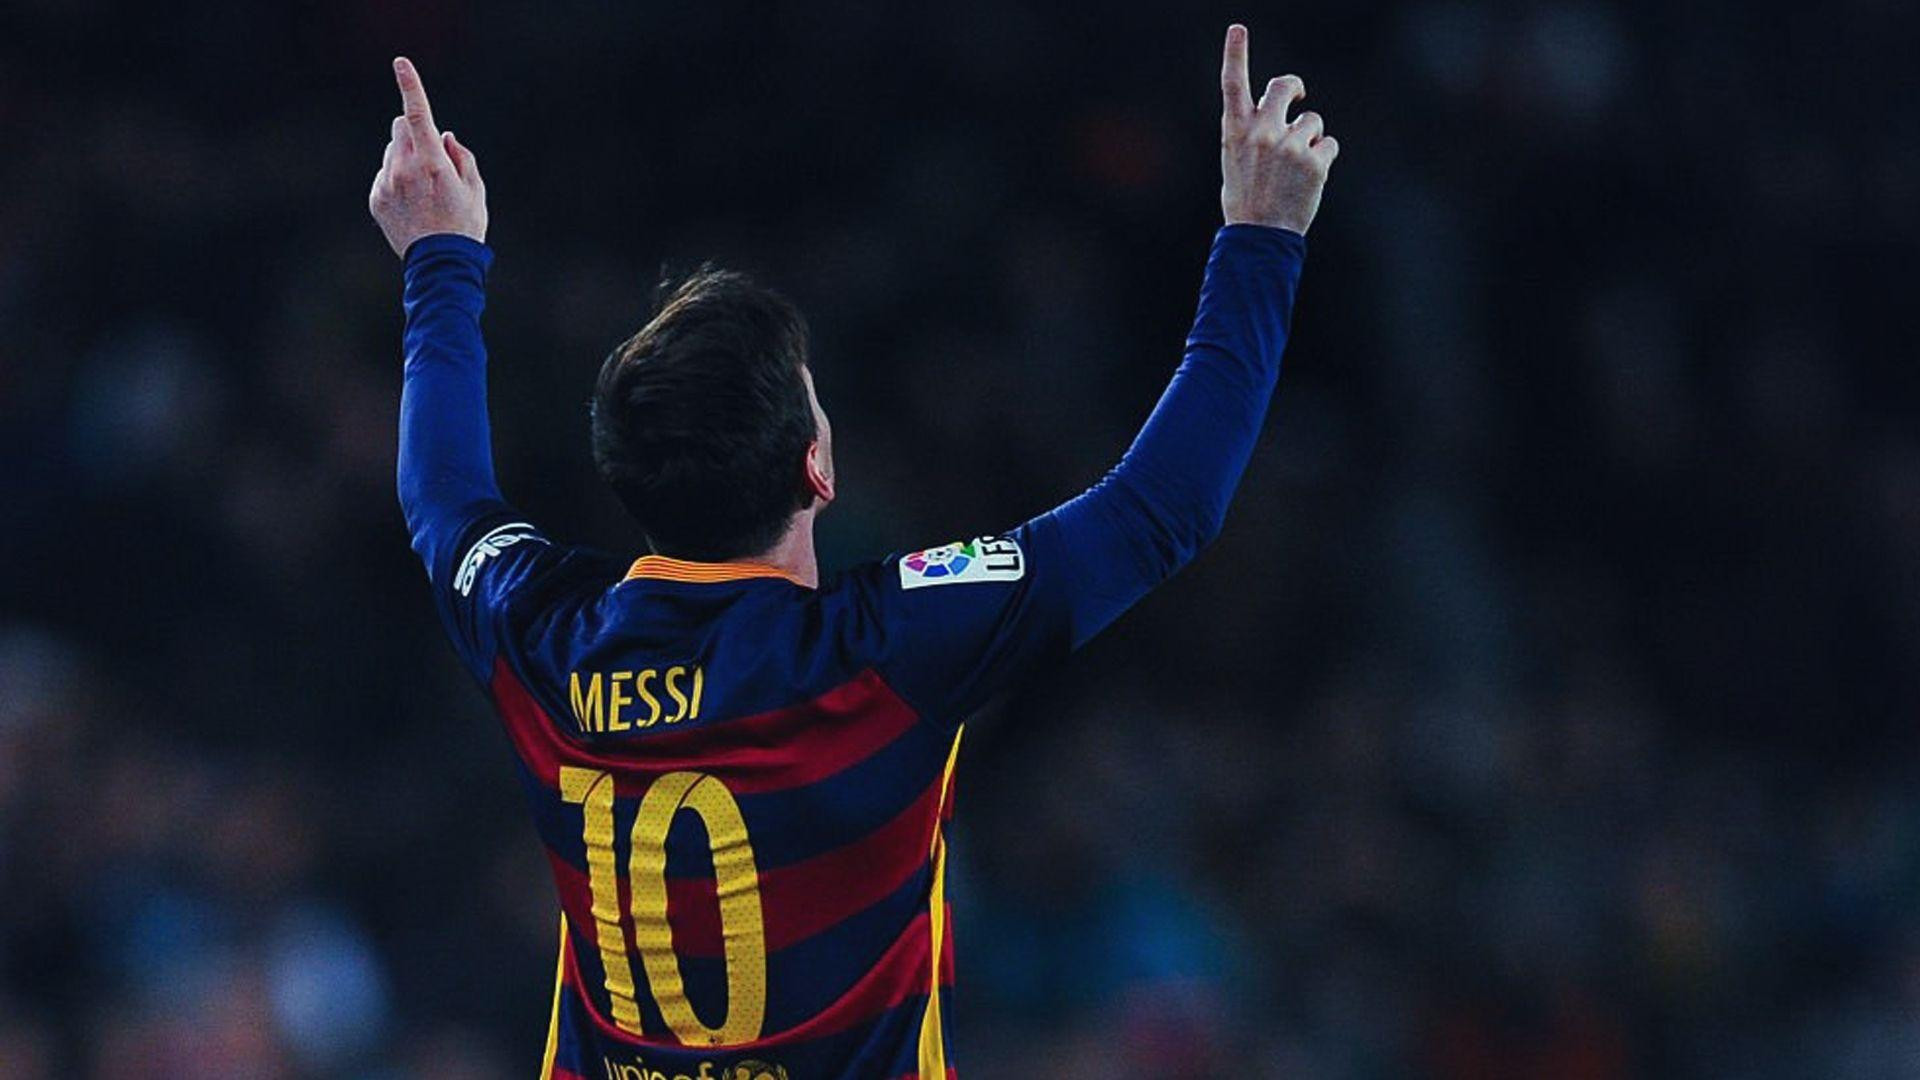 Messi Celebration Wallpapers Wallpaper Cave